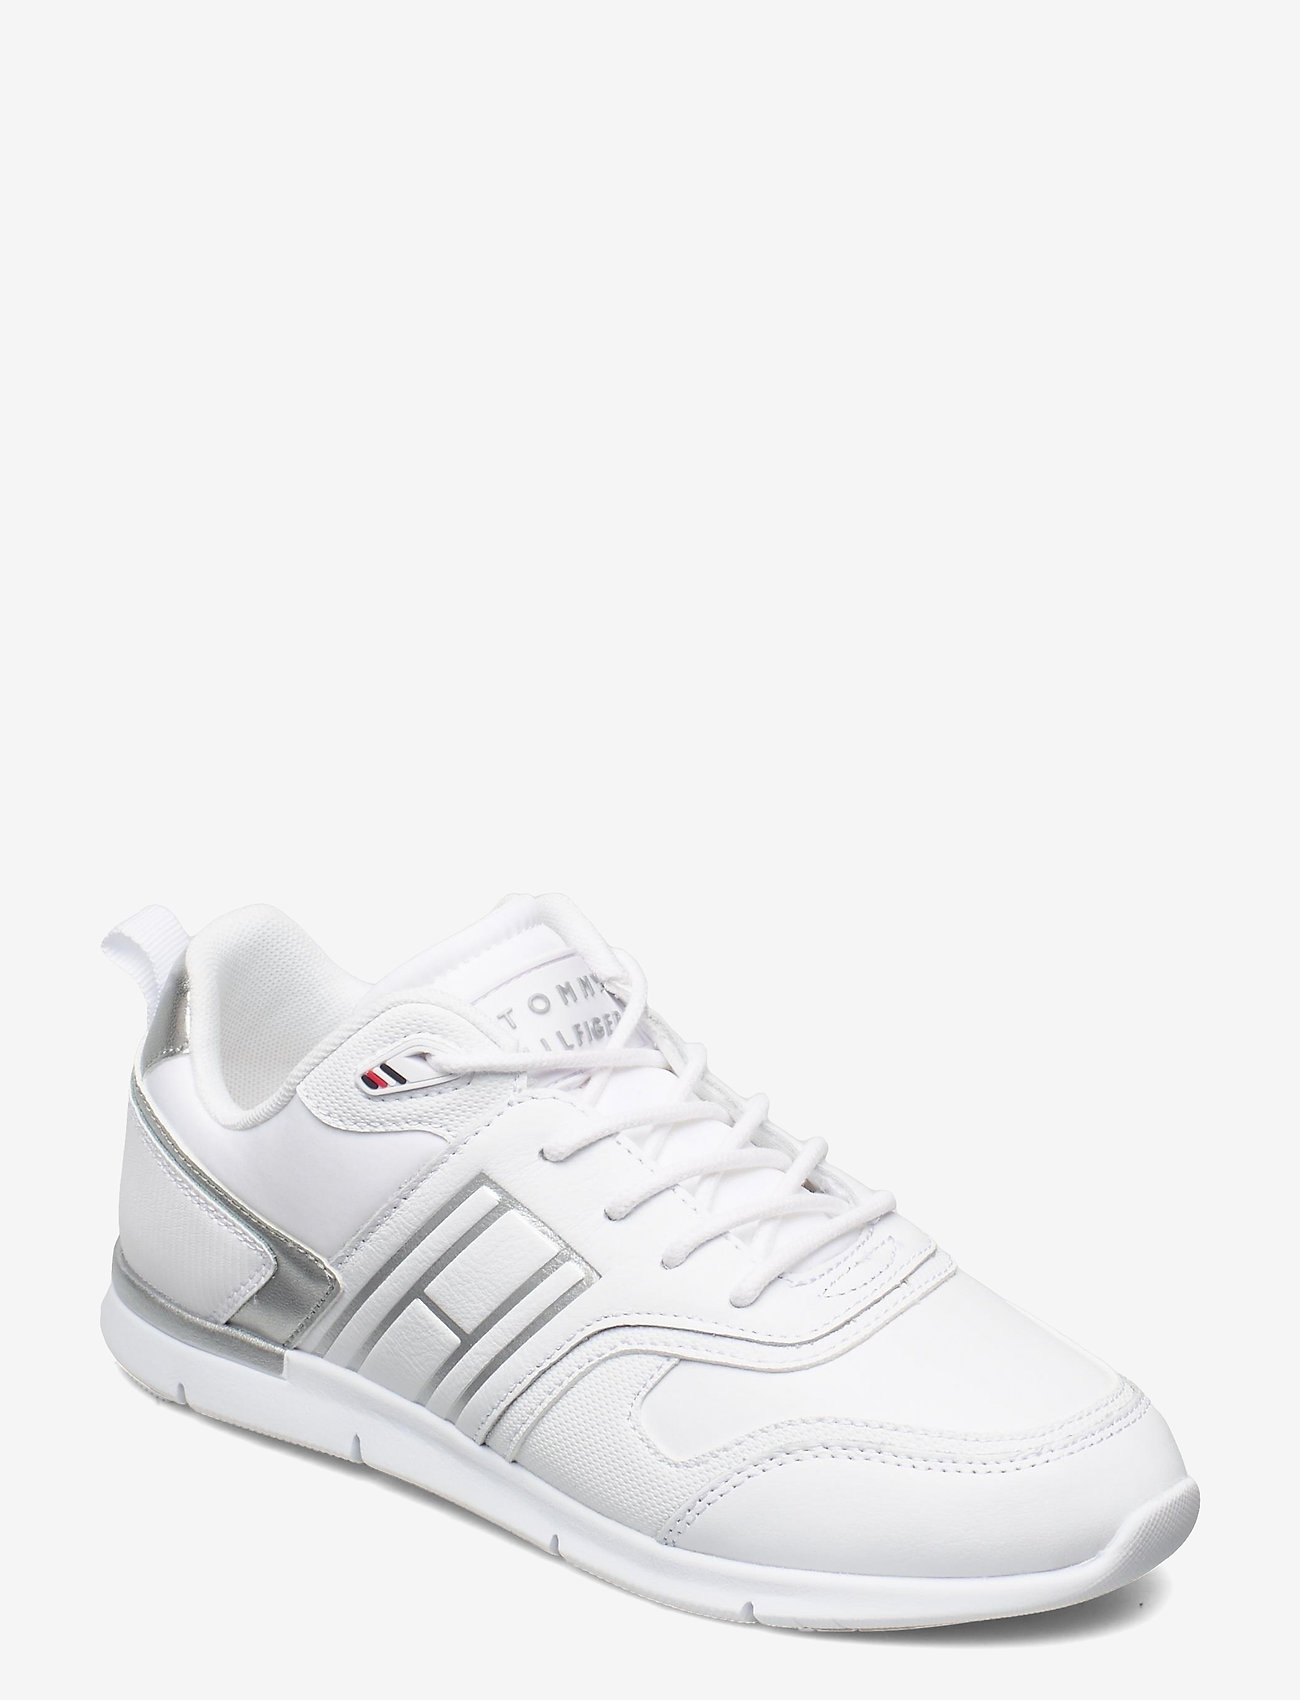 Tommy Hilfiger - METALLIC LIGHTWEIGHT SNEAKER - low top sneakers - white - 0